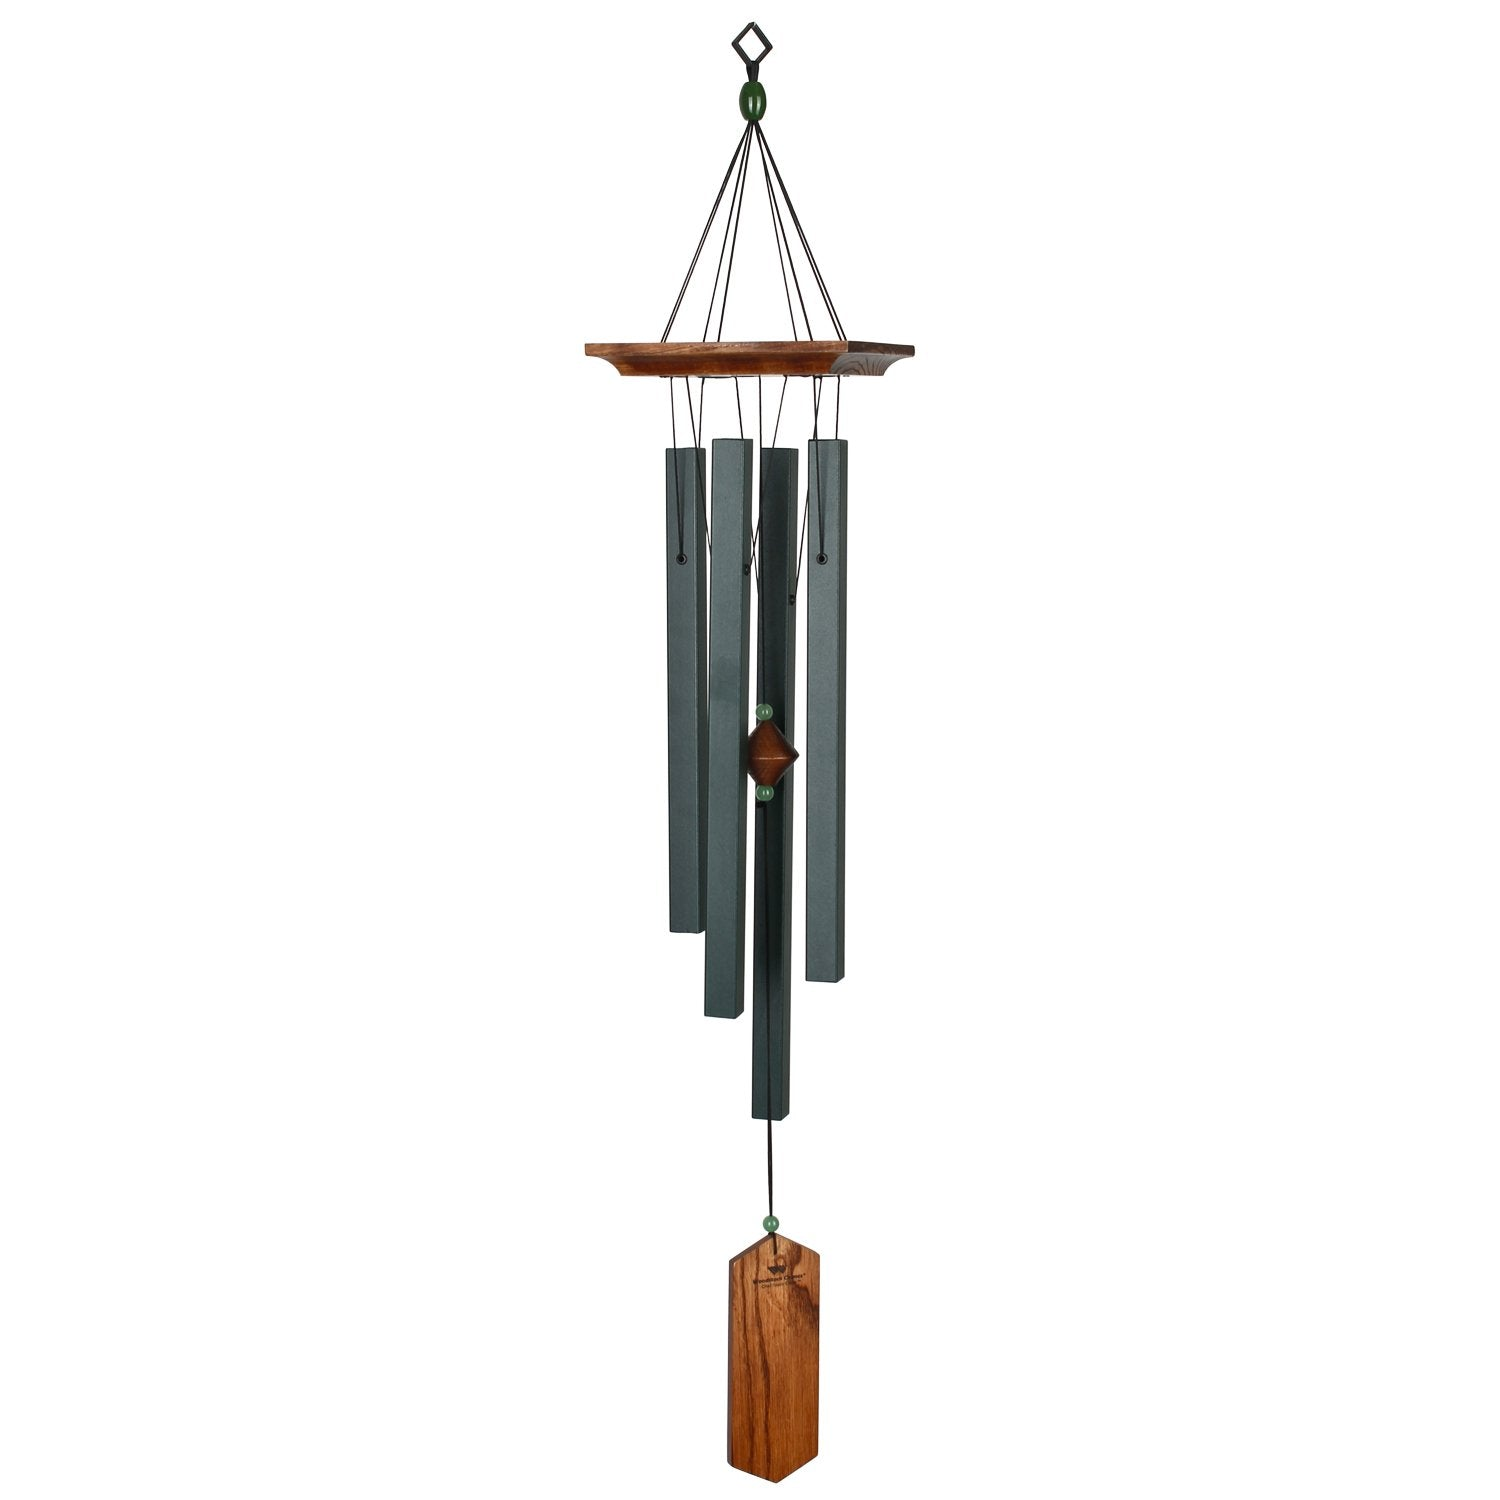 Craftsman Chime - Evergreen full product image